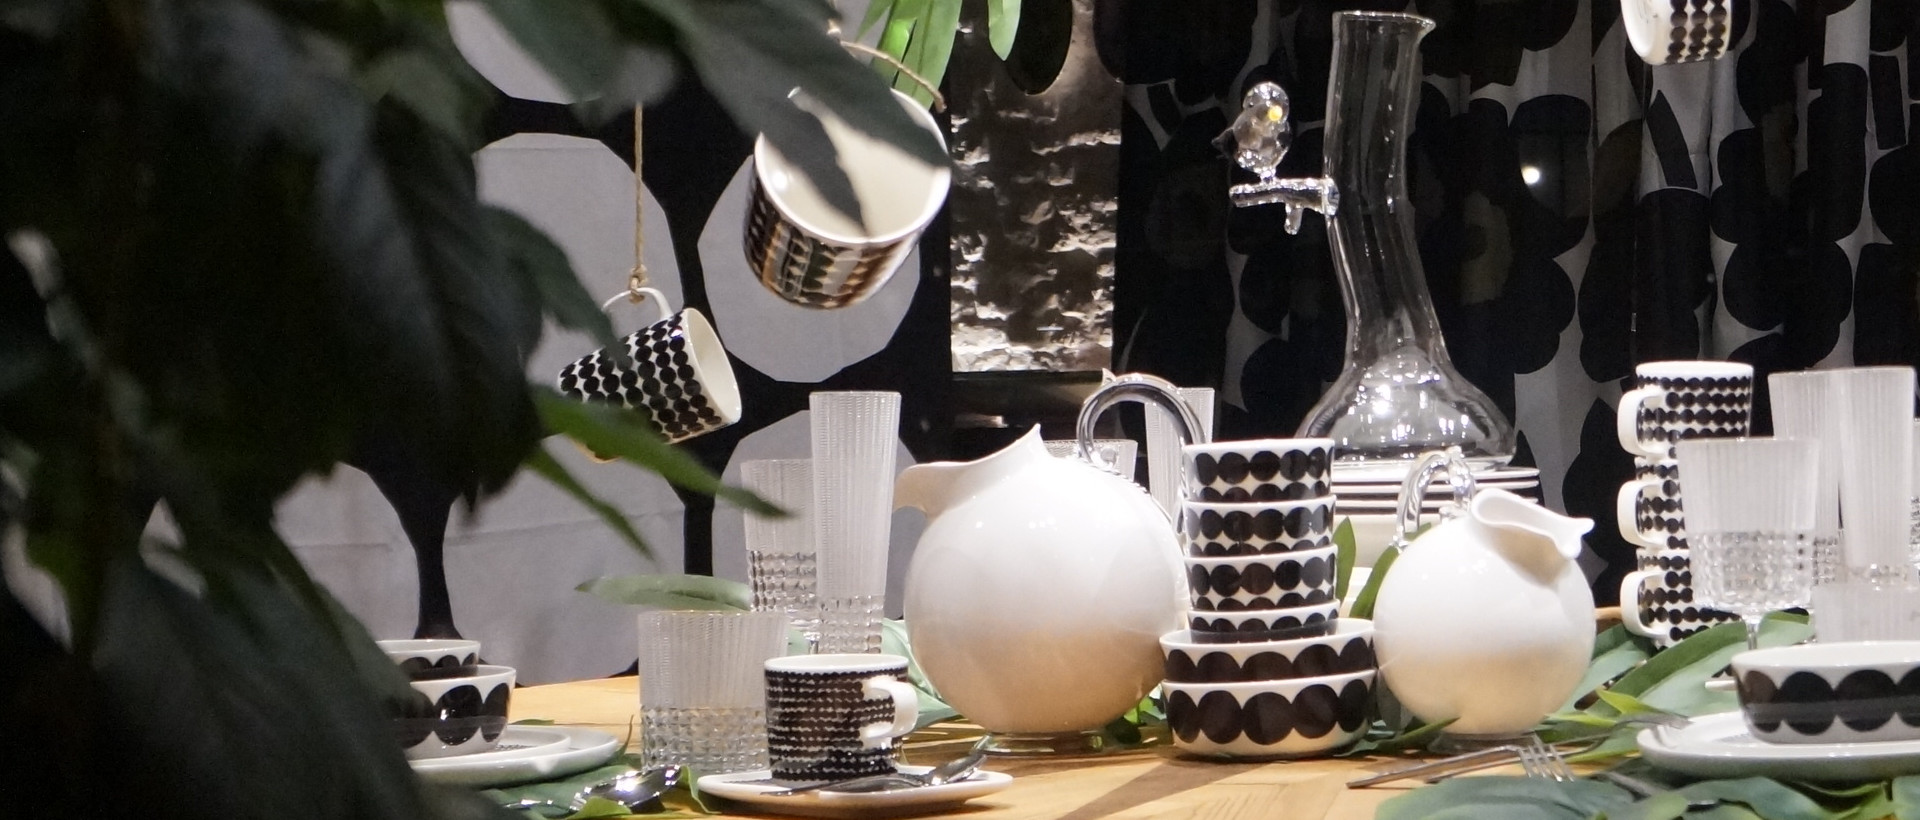 Morandin showcase with Marimekko products